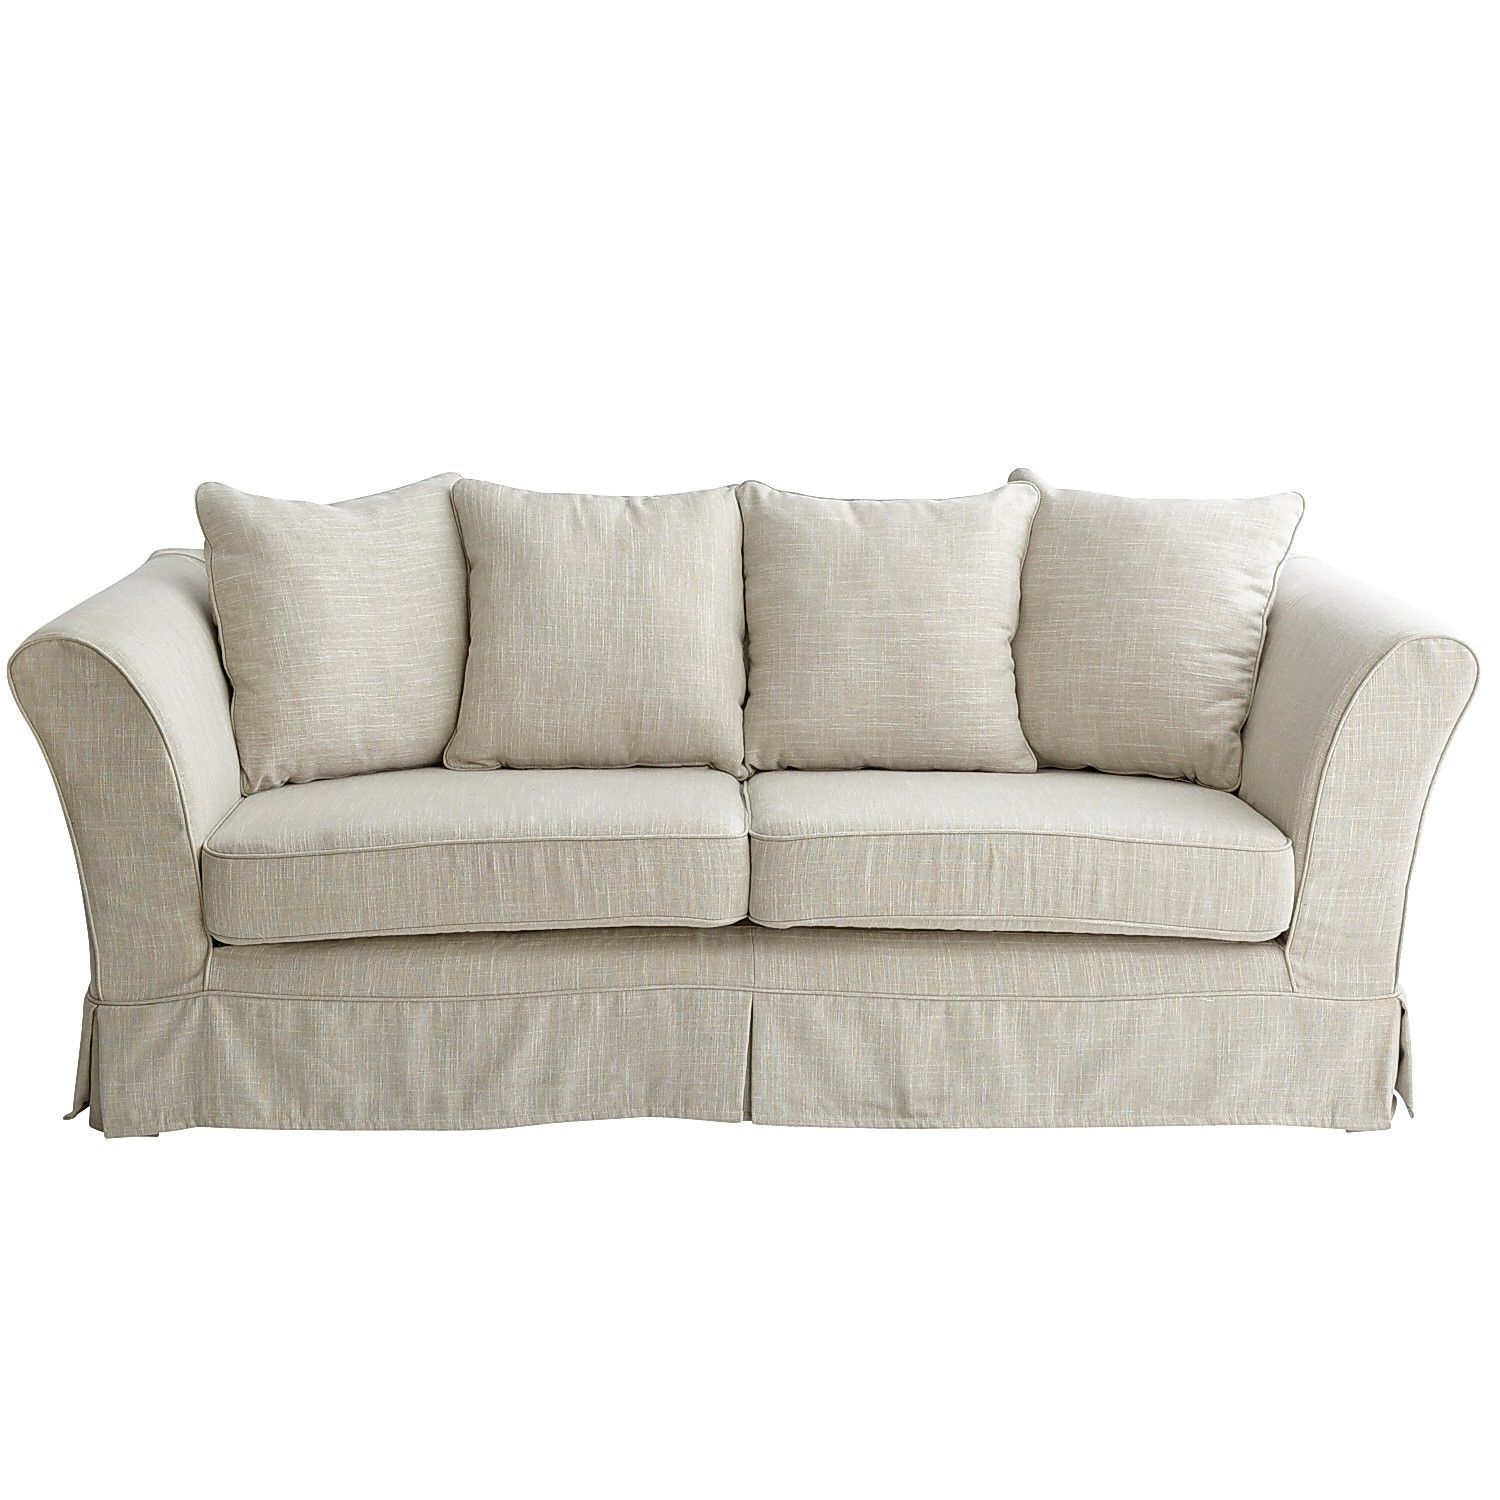 Super Portia Slipcovered Sofa Flax Pier 1 Imports Home And Ocoug Best Dining Table And Chair Ideas Images Ocougorg